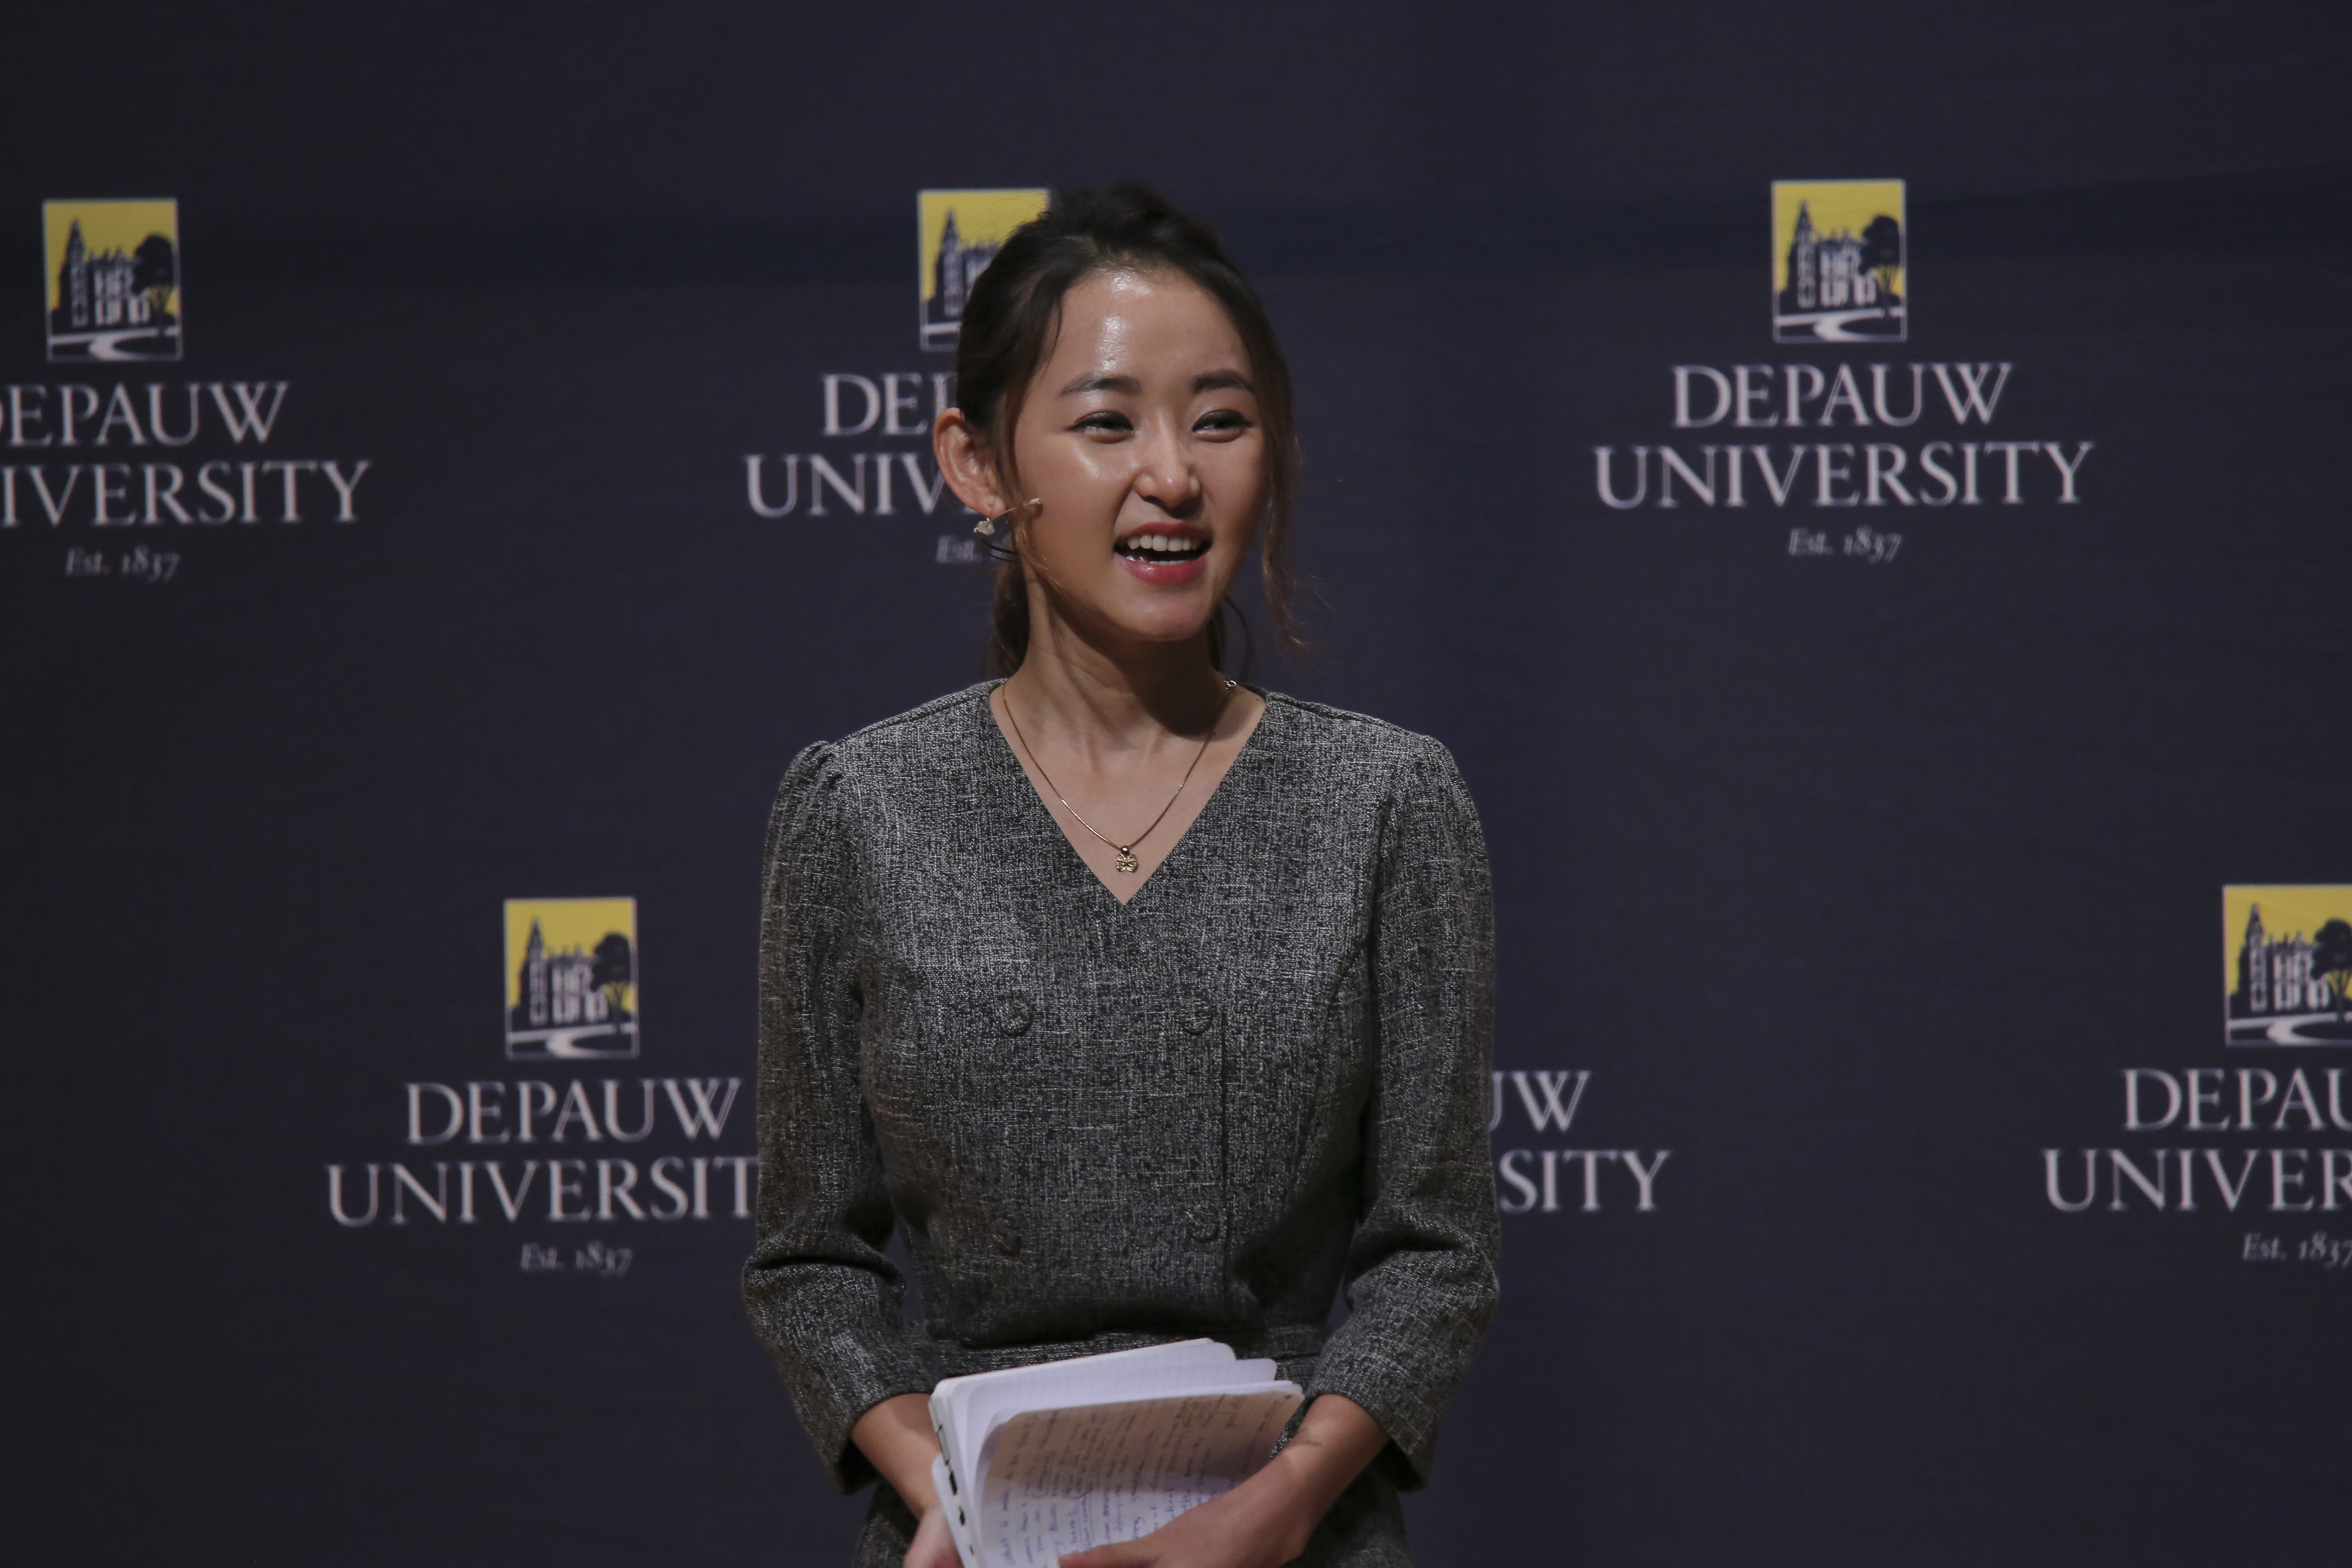 Human rights activist Yeonmi Park became the youngest-ever Ubben Lecturer on Oct. 5, 2015.